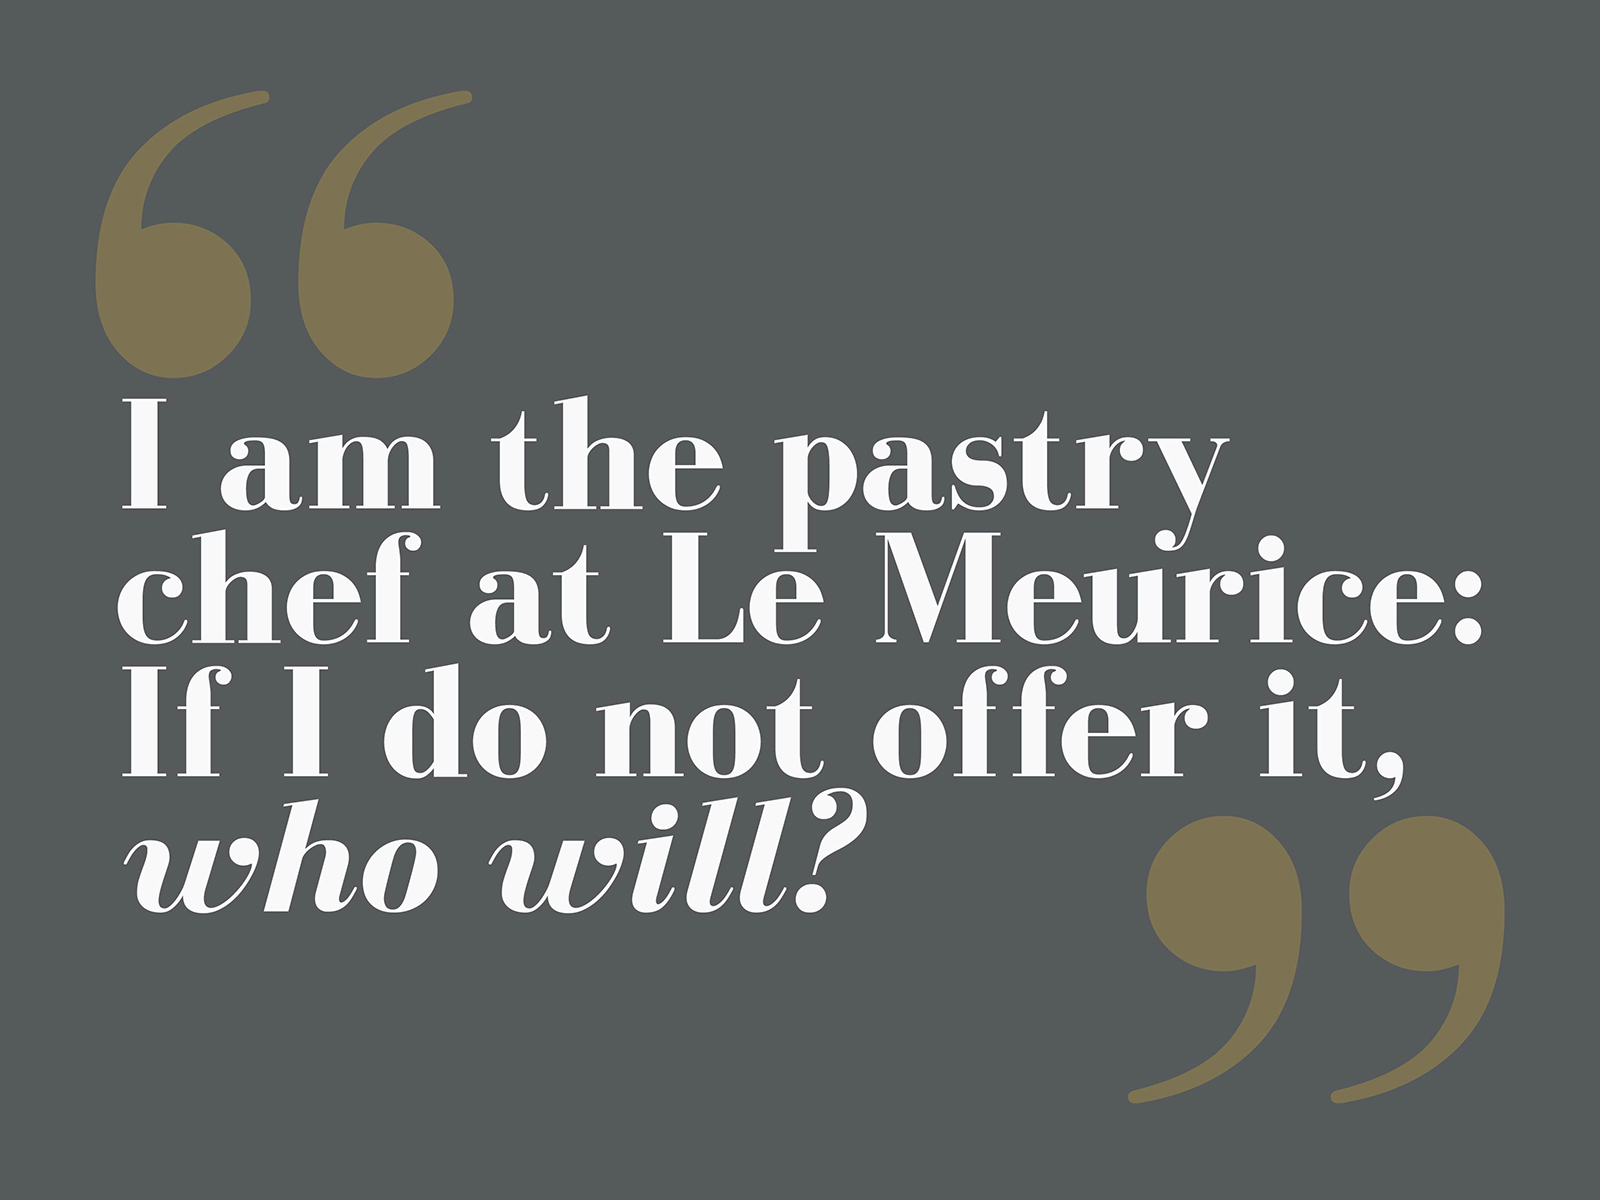 second pastry chef quote